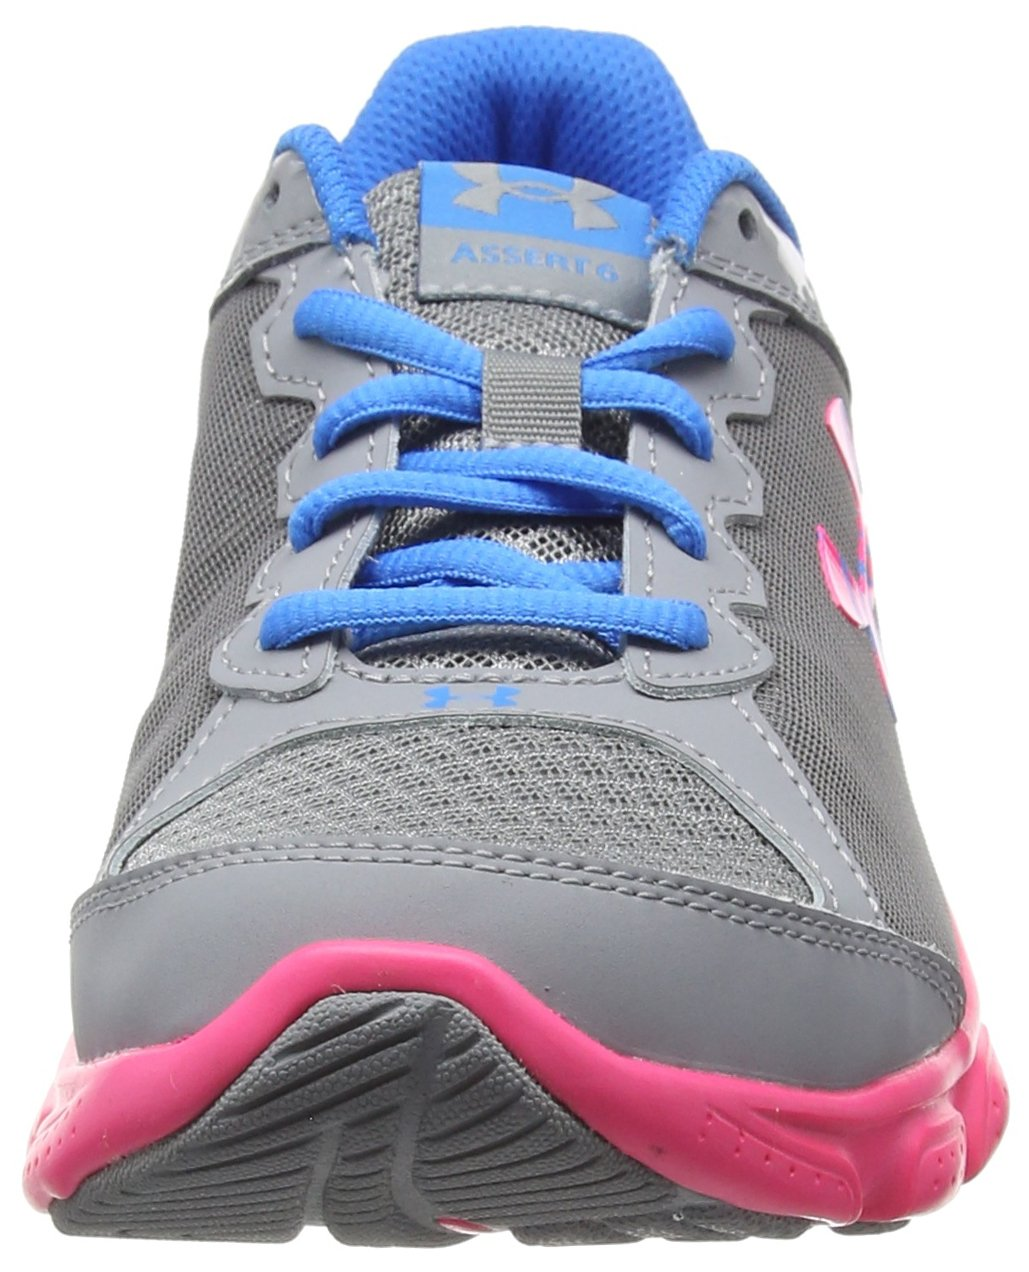 Under Armour Girls' Grade School Micro G Assert 6, Steel (036)/Harmony Red, 5.5 by Under Armour (Image #4)